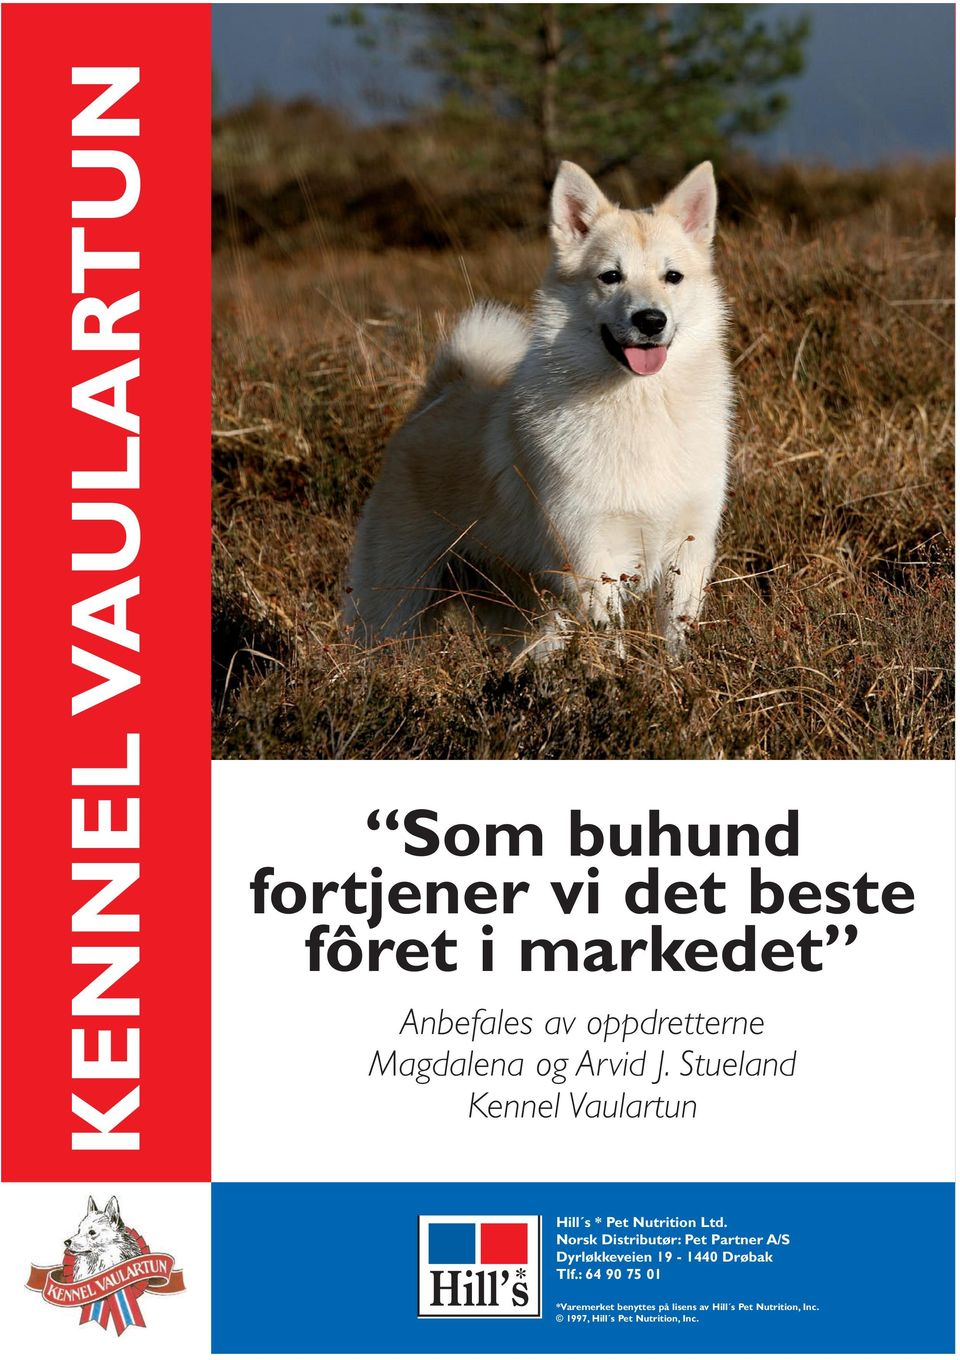 Stueland Kennel Vaulartun Hill s * Pet Nutrition Ltd.